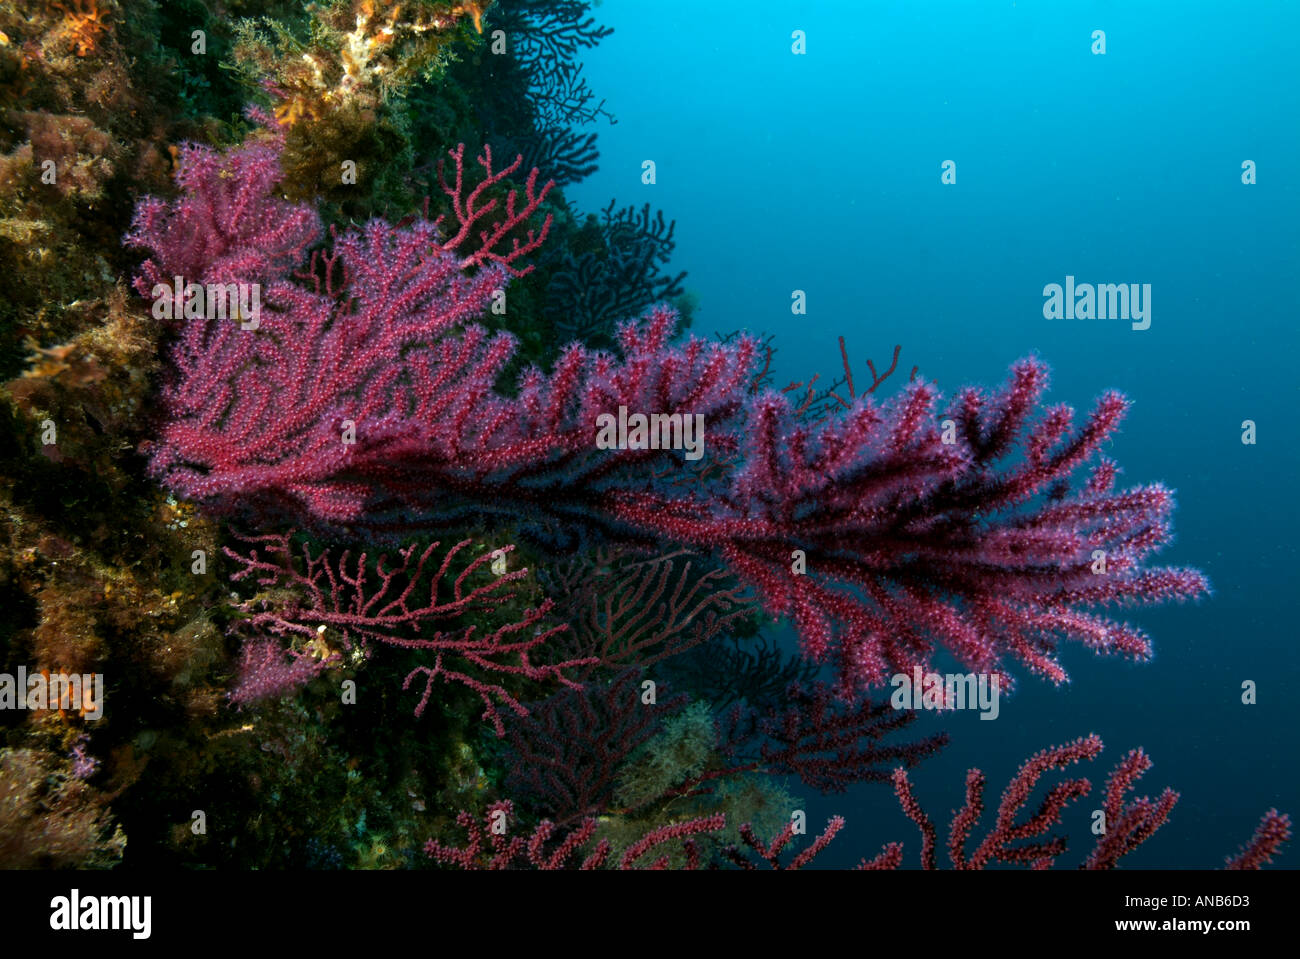 Coral : Red gorgonian - Alcyonium palmatum on a coral reef, Caramasaigne, Riou Island, France. - Stock Image